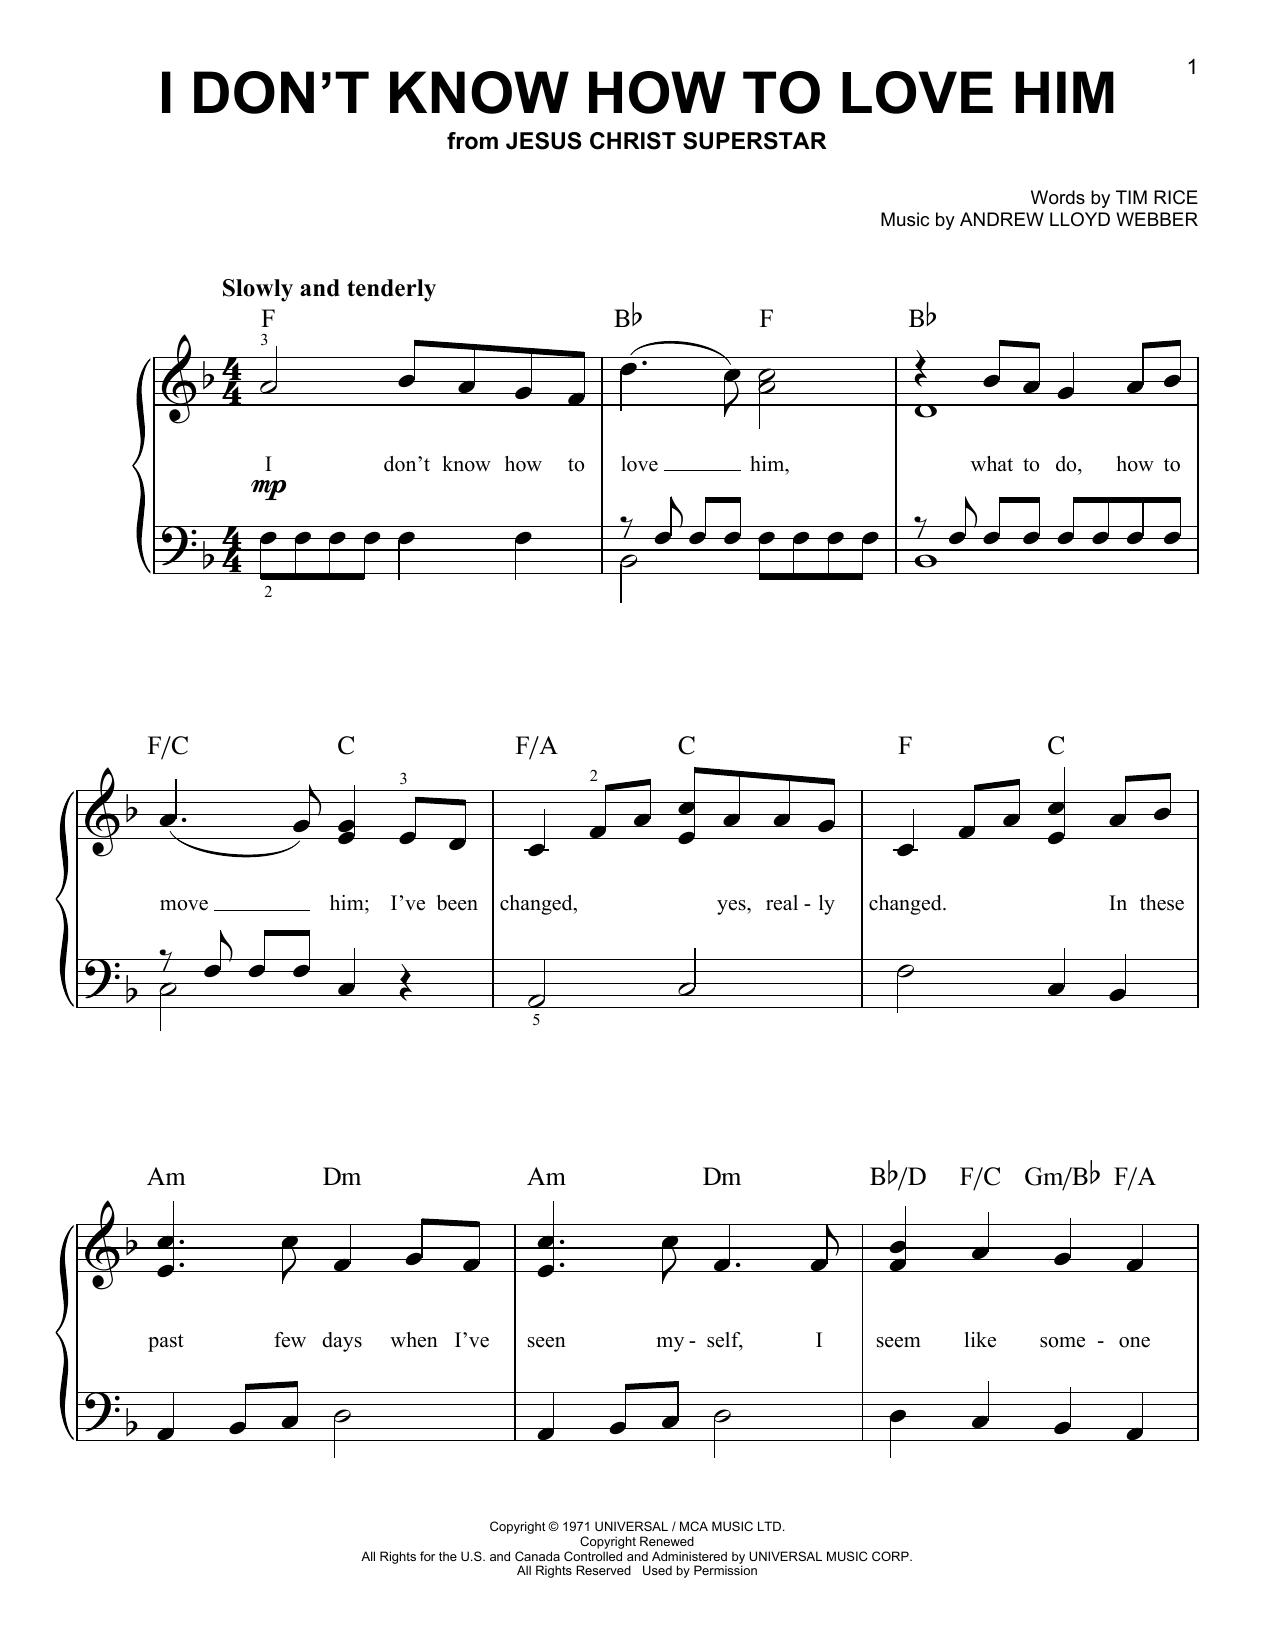 Andrew Lloyd Webber I Don't Know How To Love Him sheet music notes and chords. Download Printable PDF.